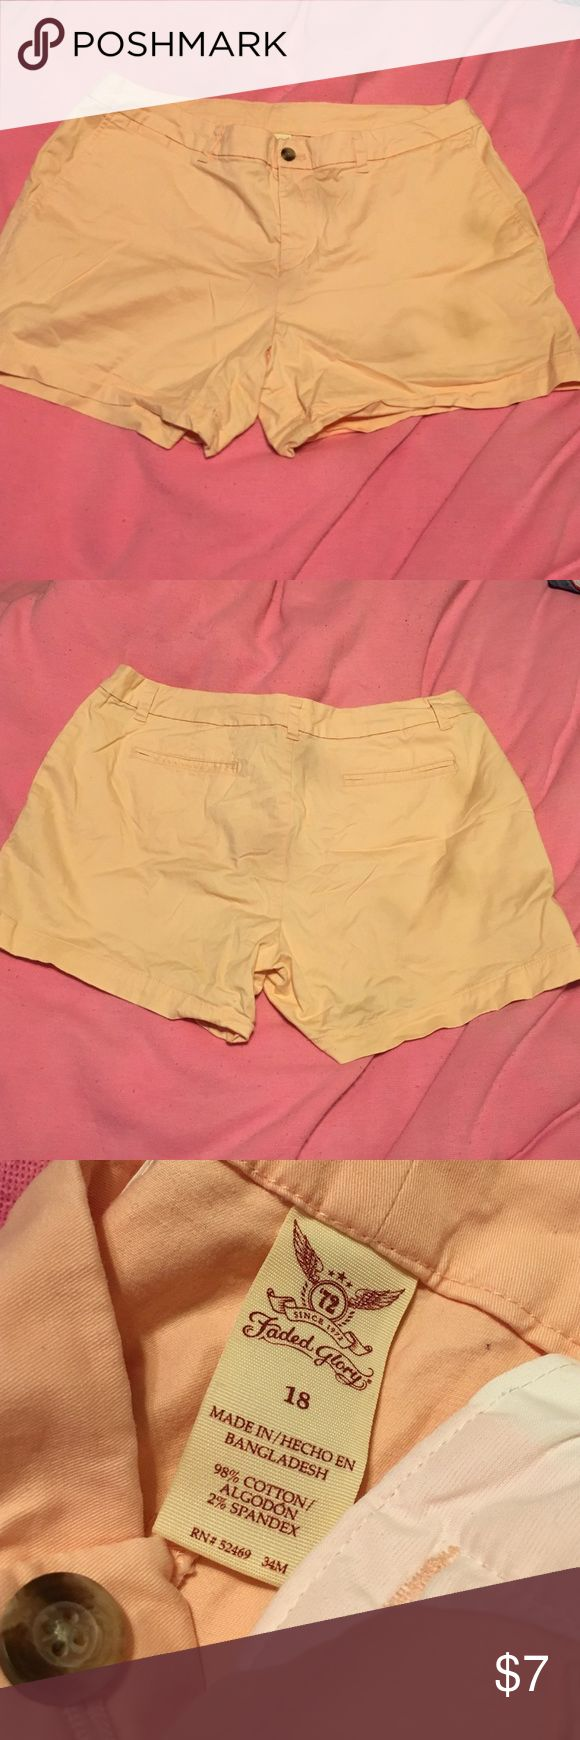 "🍑🍑Peach Shorts Faded Glory peach shorts. 3.5"" inseam. Very stretchy and comfy! It has a mini change pocket as well. Worn only a handful of times and can be dressed up or down Faded Glory Shorts"